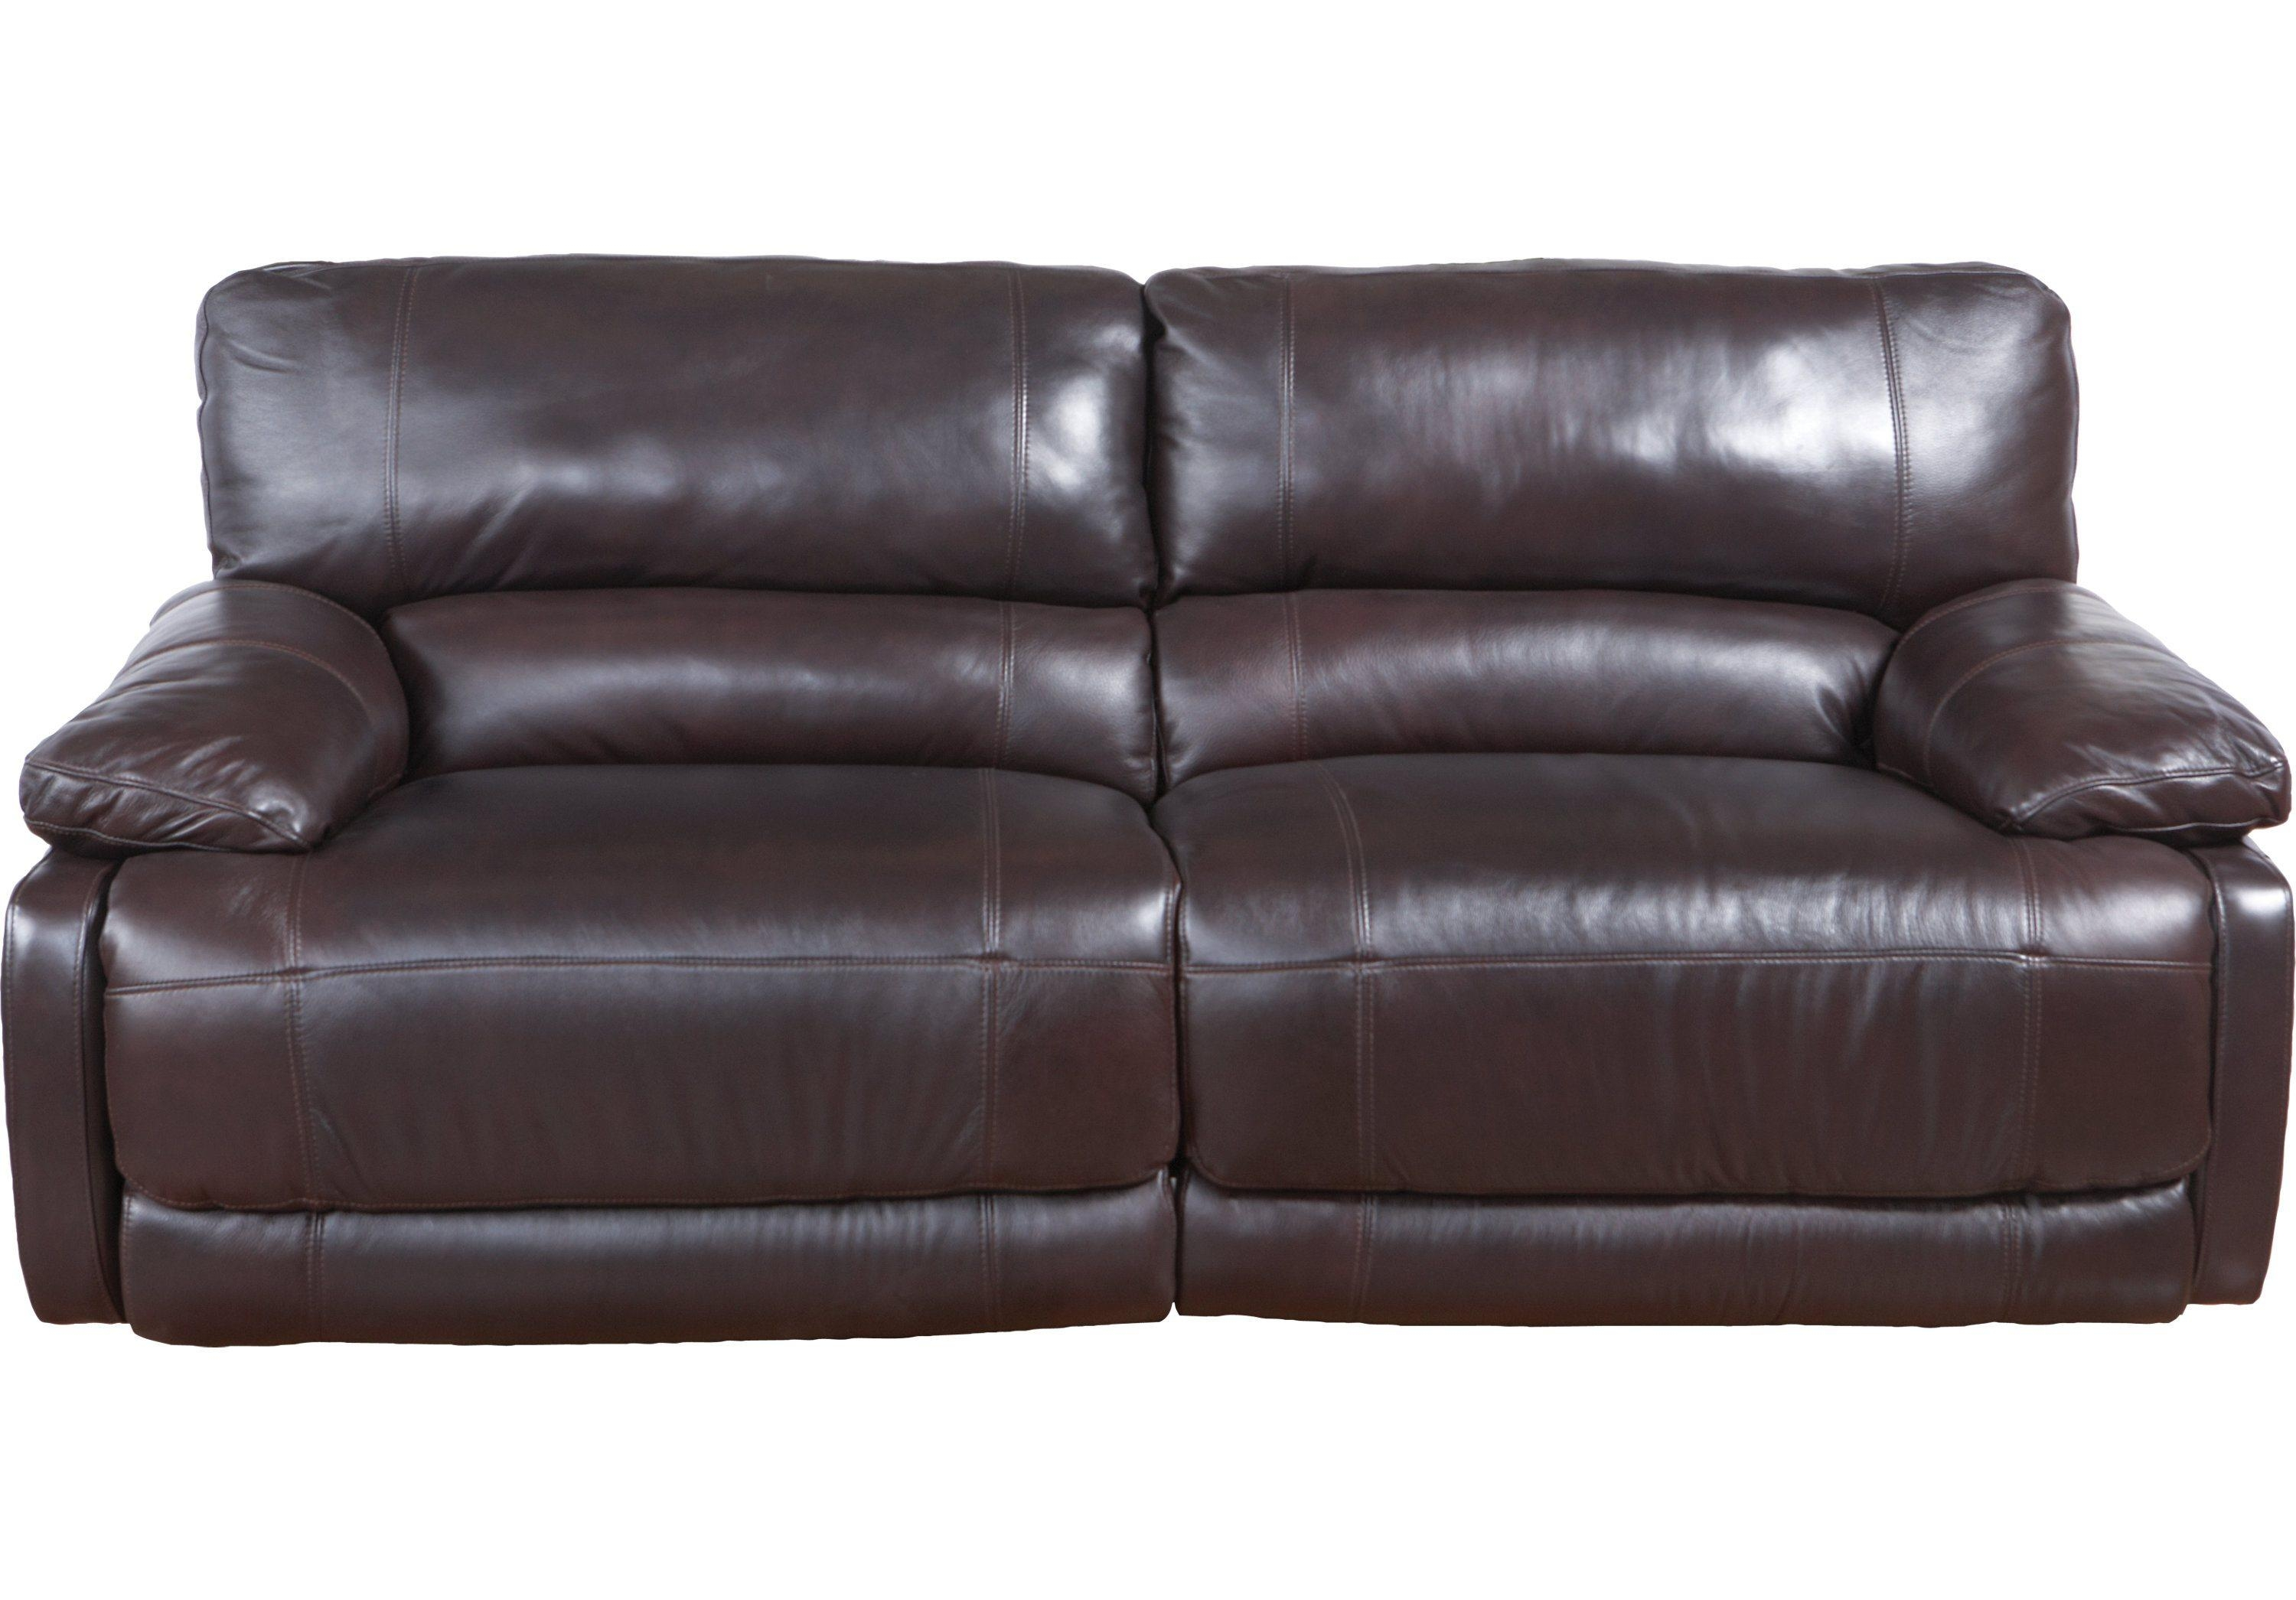 Sofas Center : Cindy Crawford Sectional Metropolis Sofa Sleeper Regarding Cindy Crawford Sleeper Sofas (Image 14 of 20)